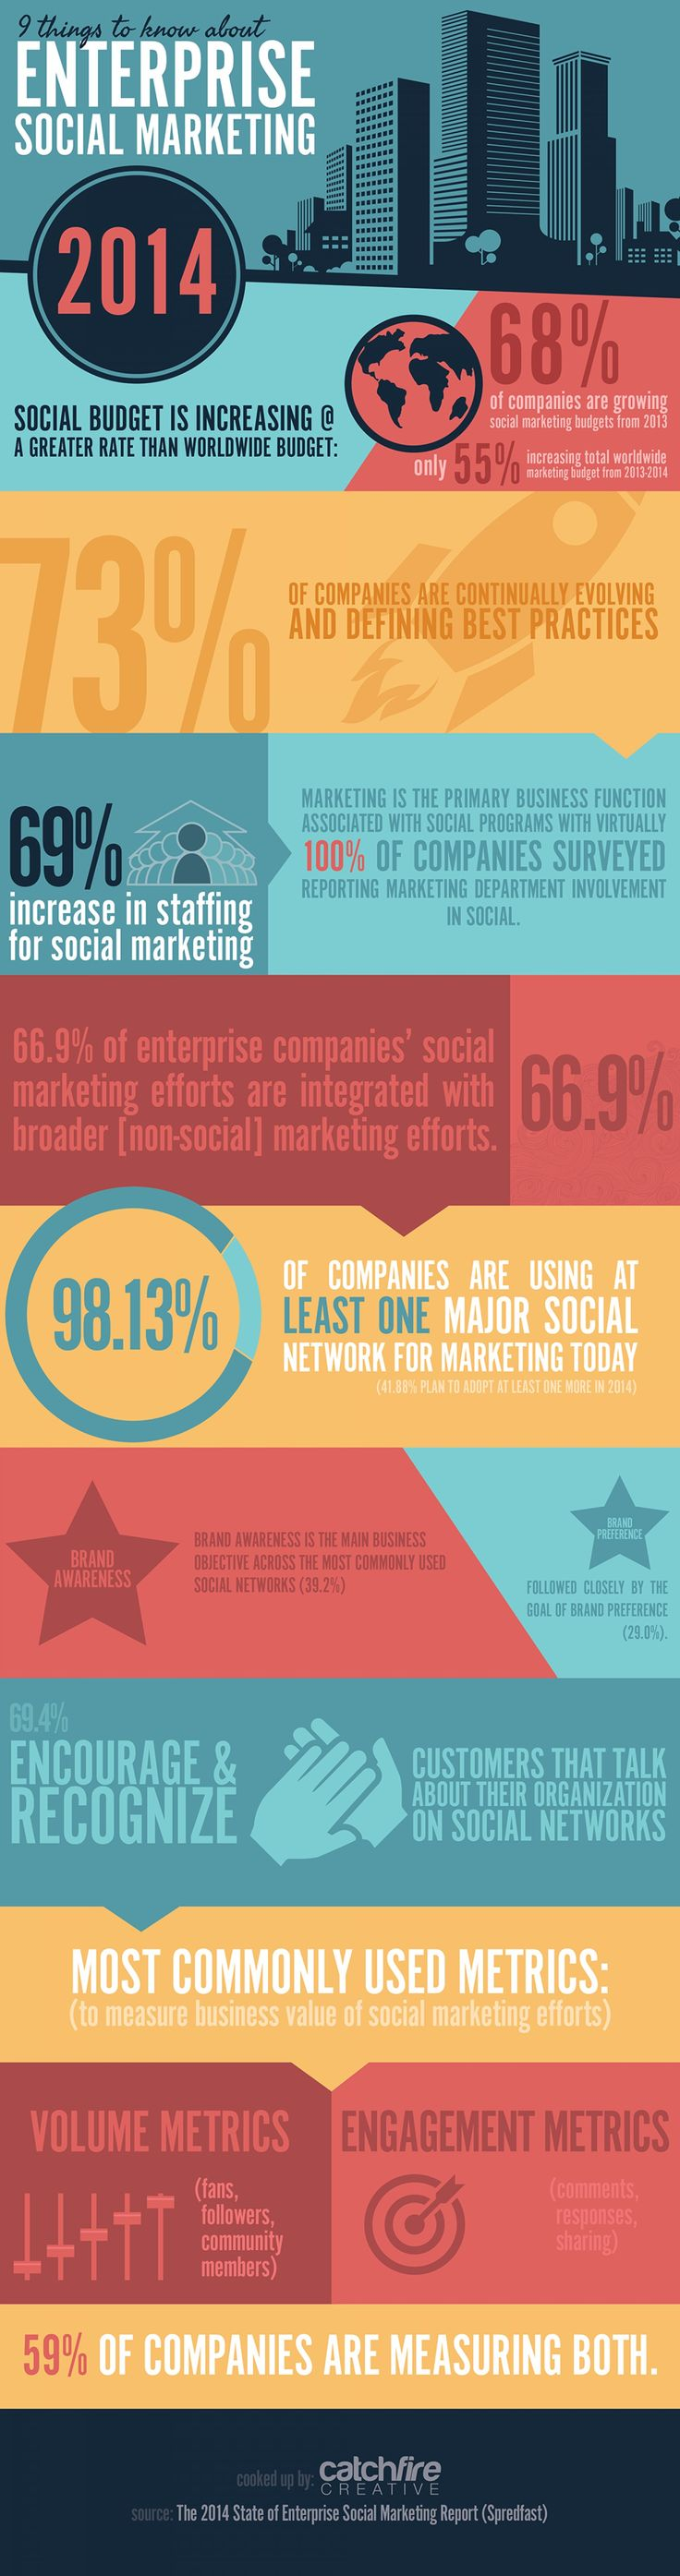 Enterprise Social Marketing in 2014 #infographic